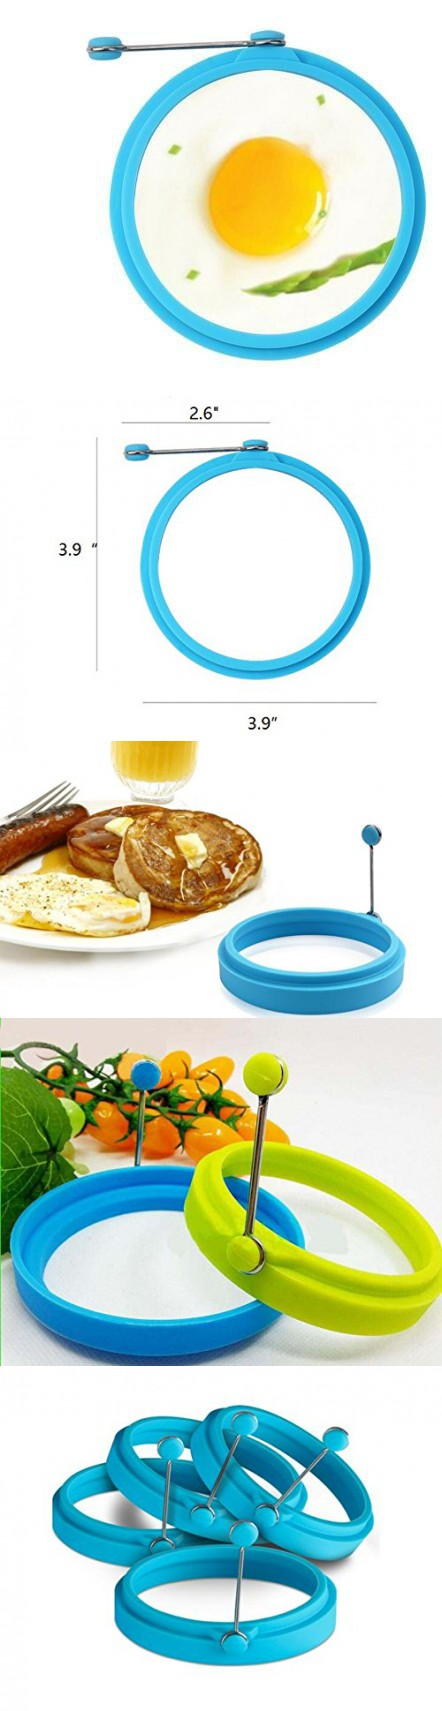 Premium Silicone Egg Cooker Ring / Pancake Rings 4-Pack Silicone Egg Ring - Egg Mold - Silicone Pancake (4, Blue )